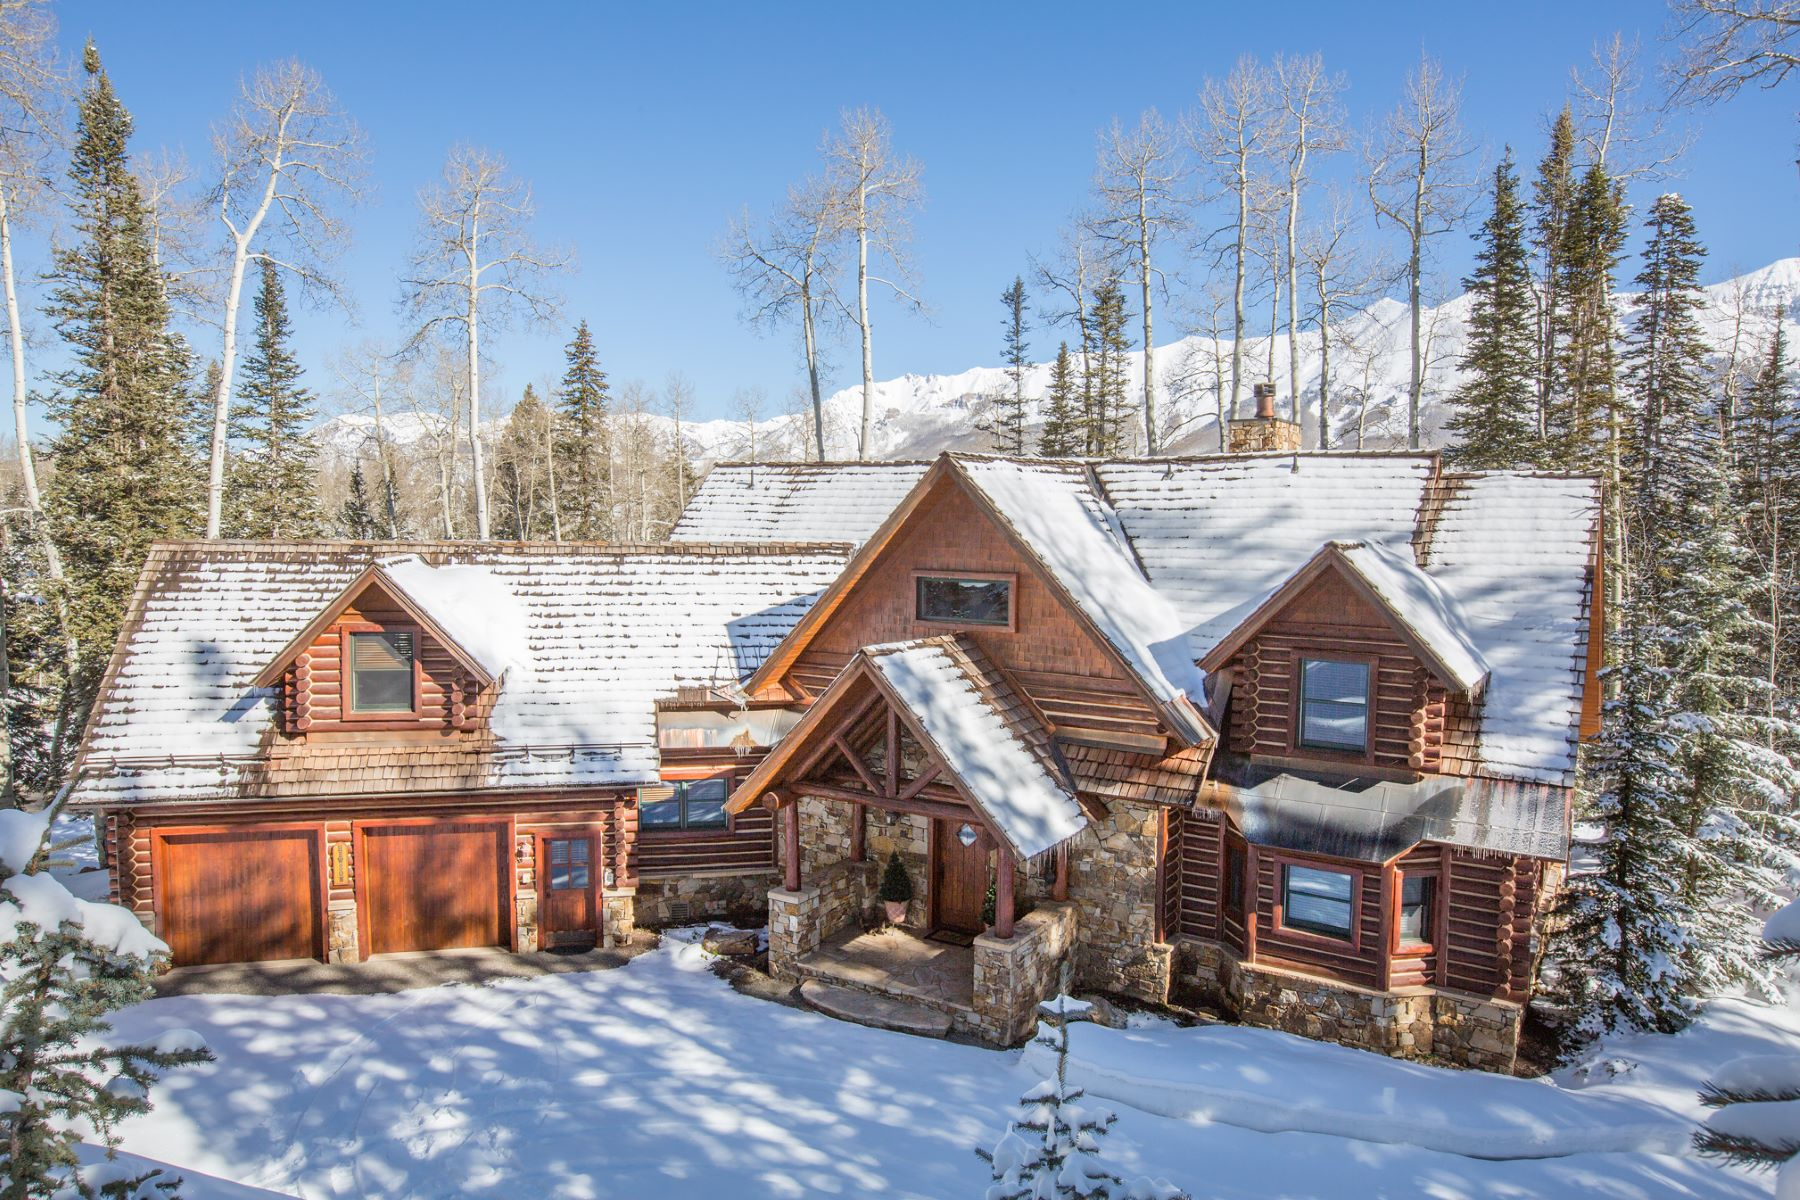 Single Family Home for Sale at 110 Polecat Lane Telluride, Colorado, 81435 United States